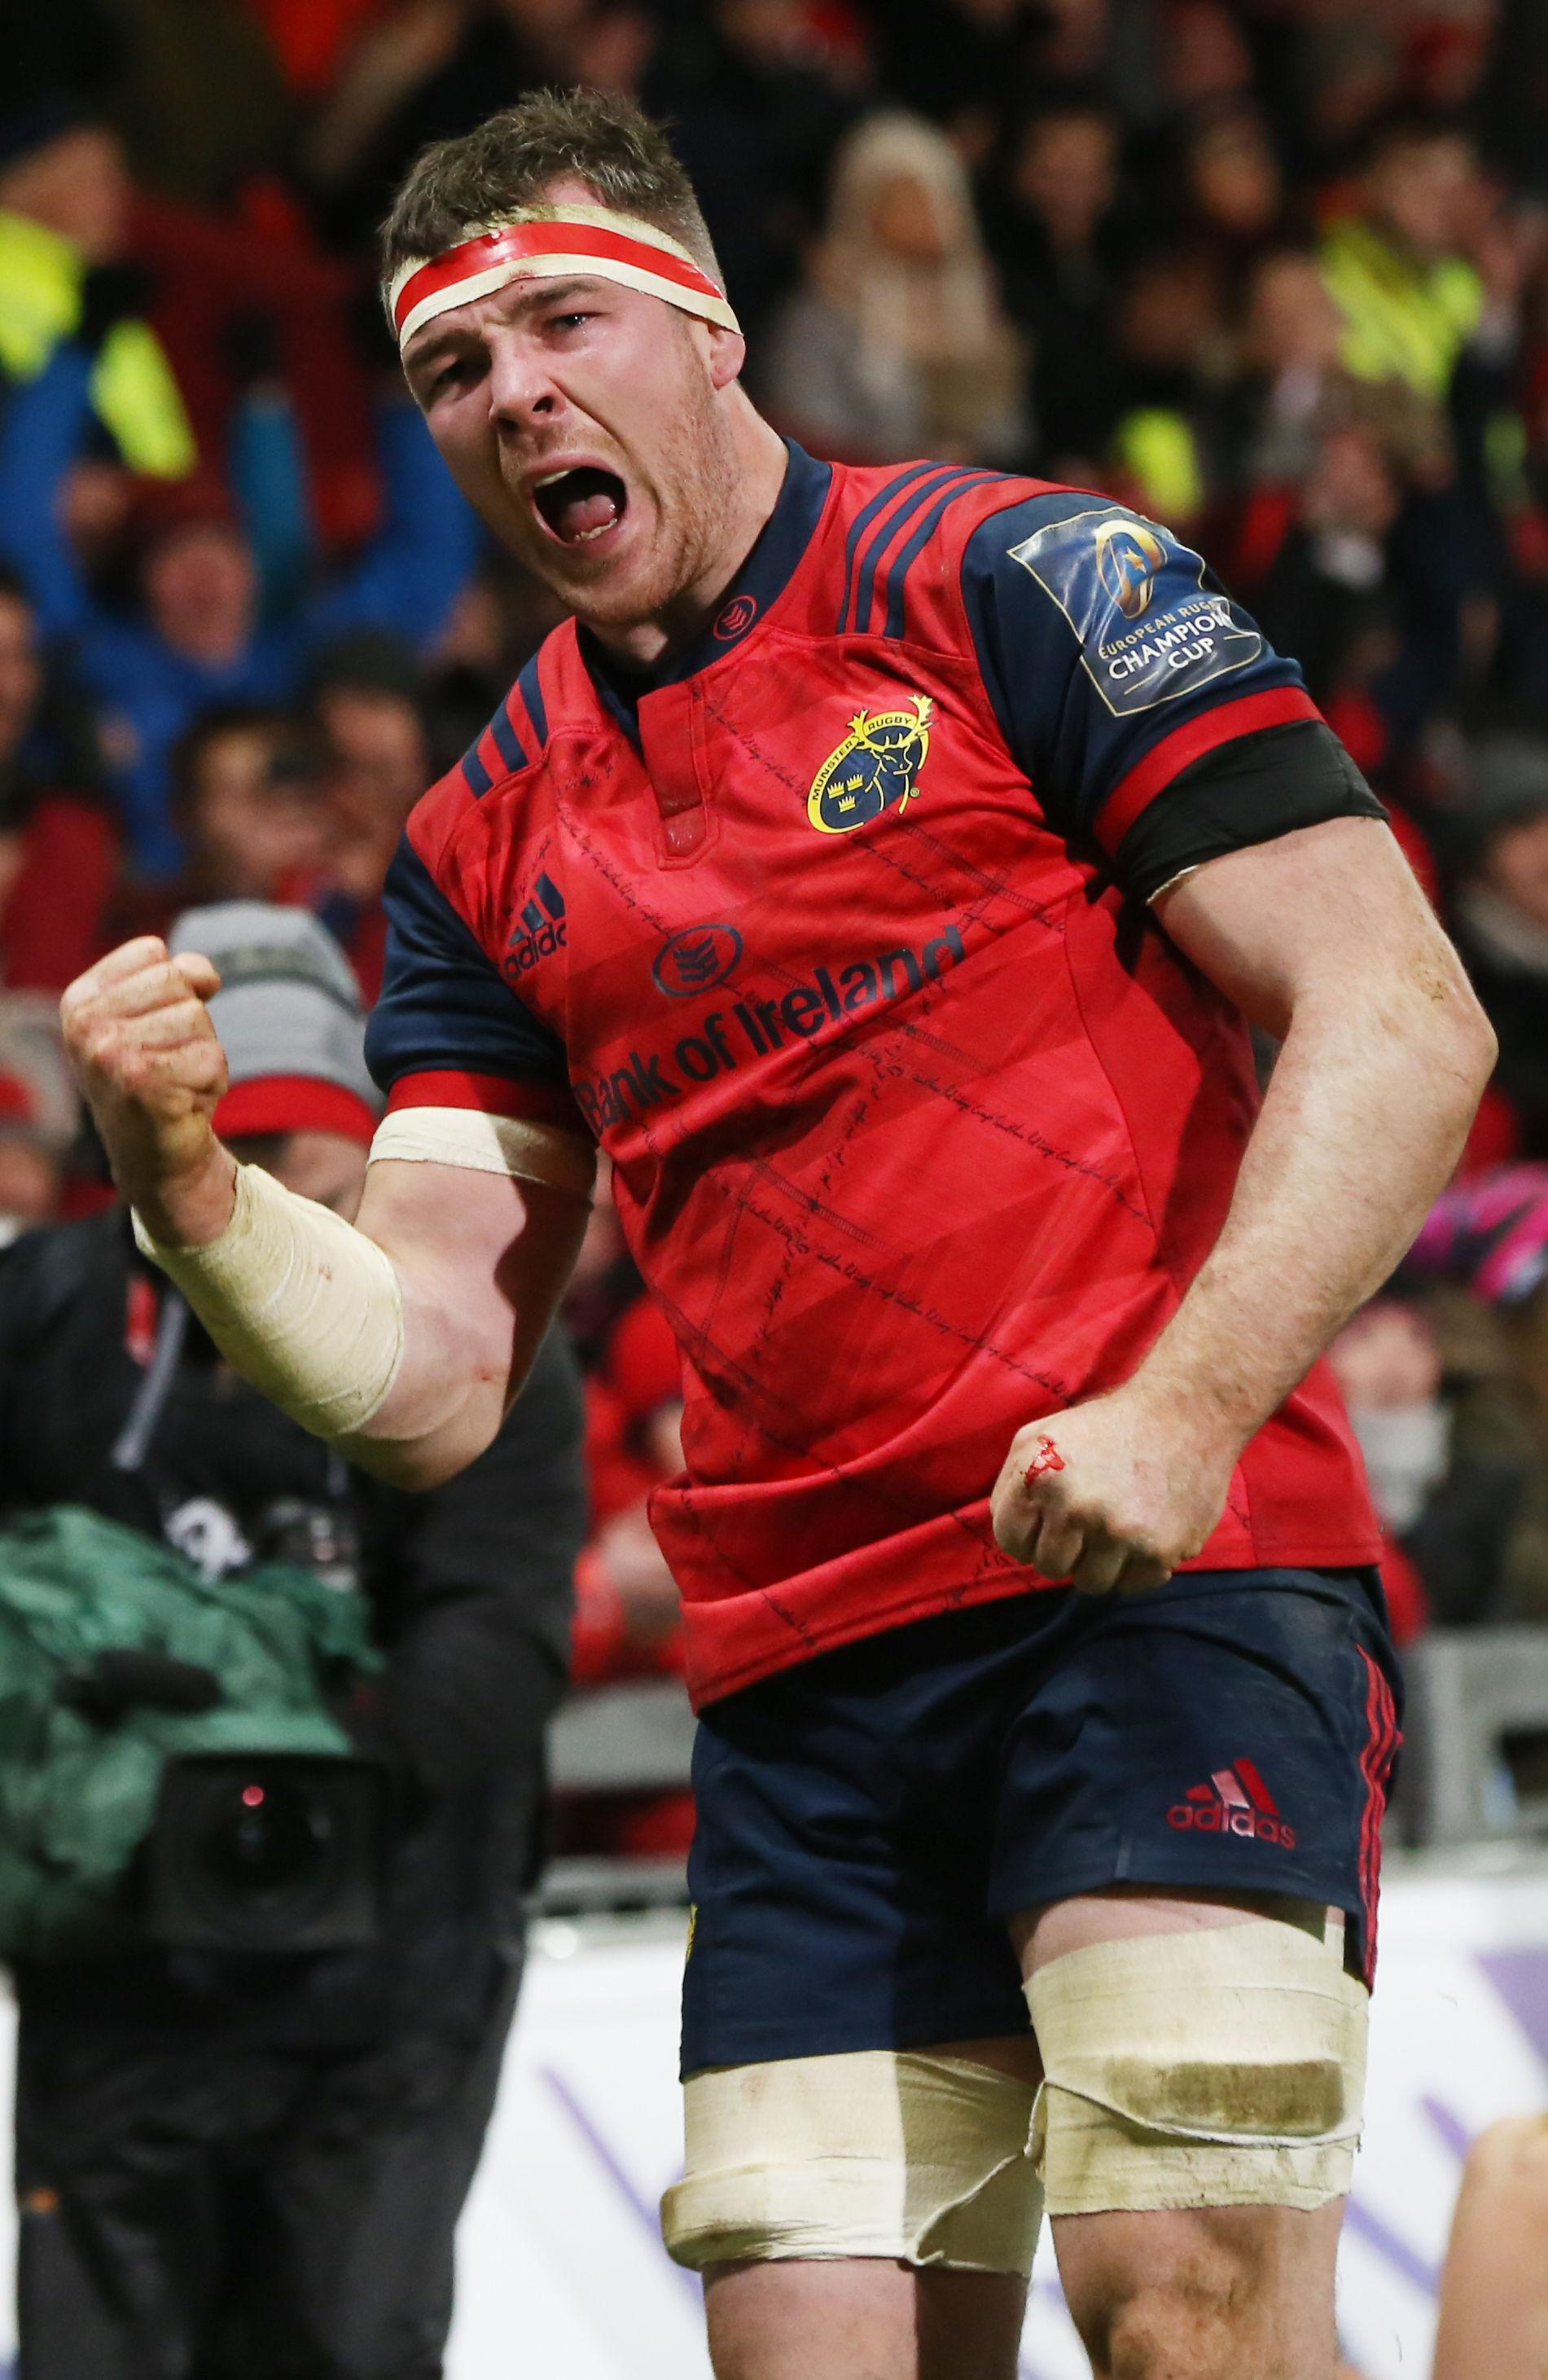 Lions and Ireland star Peter O'Mahony will lead his Munster side at Kingsholm